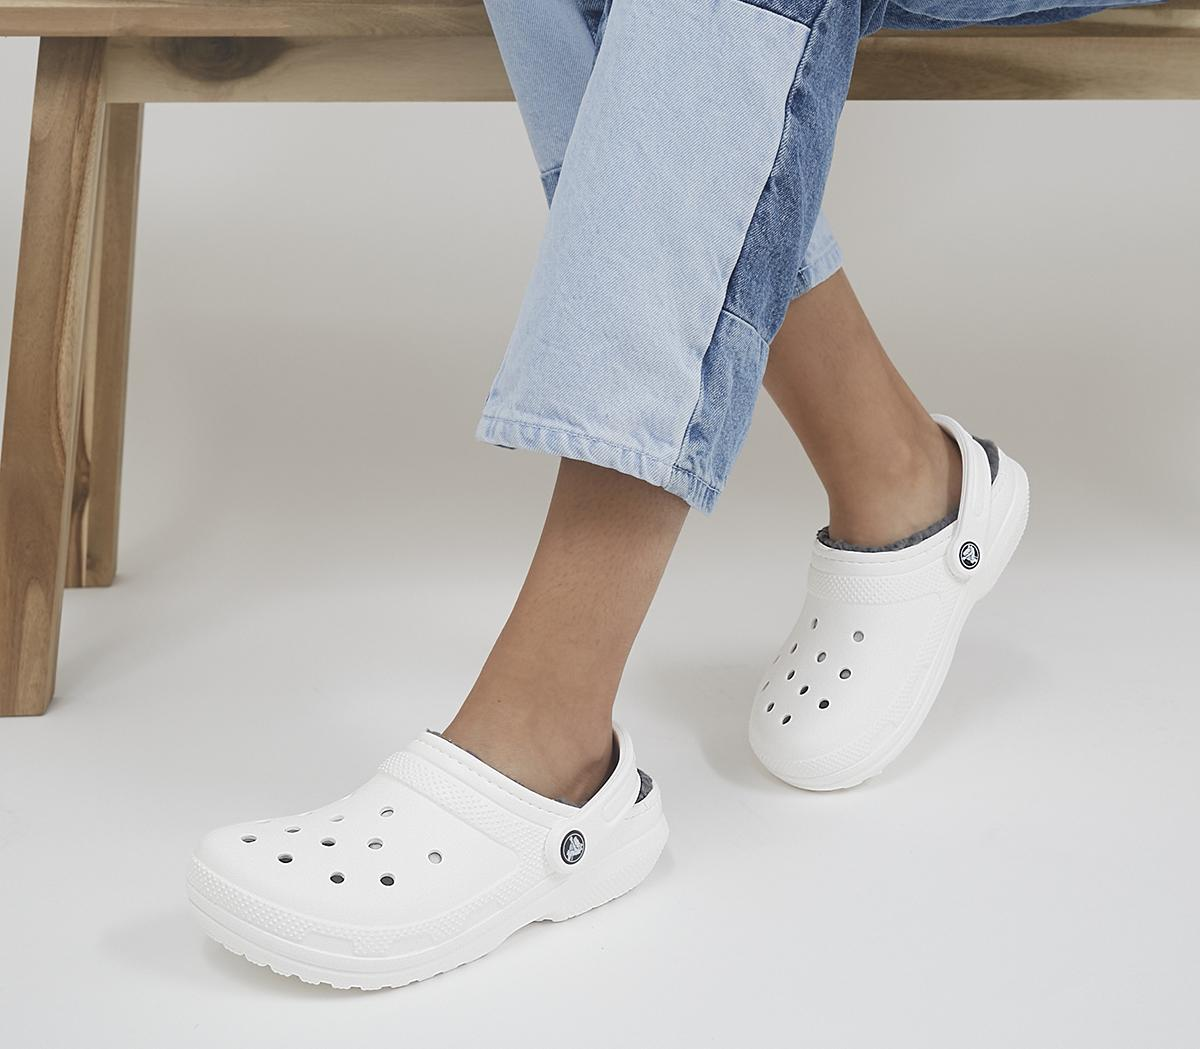 Classic Lined Clogs